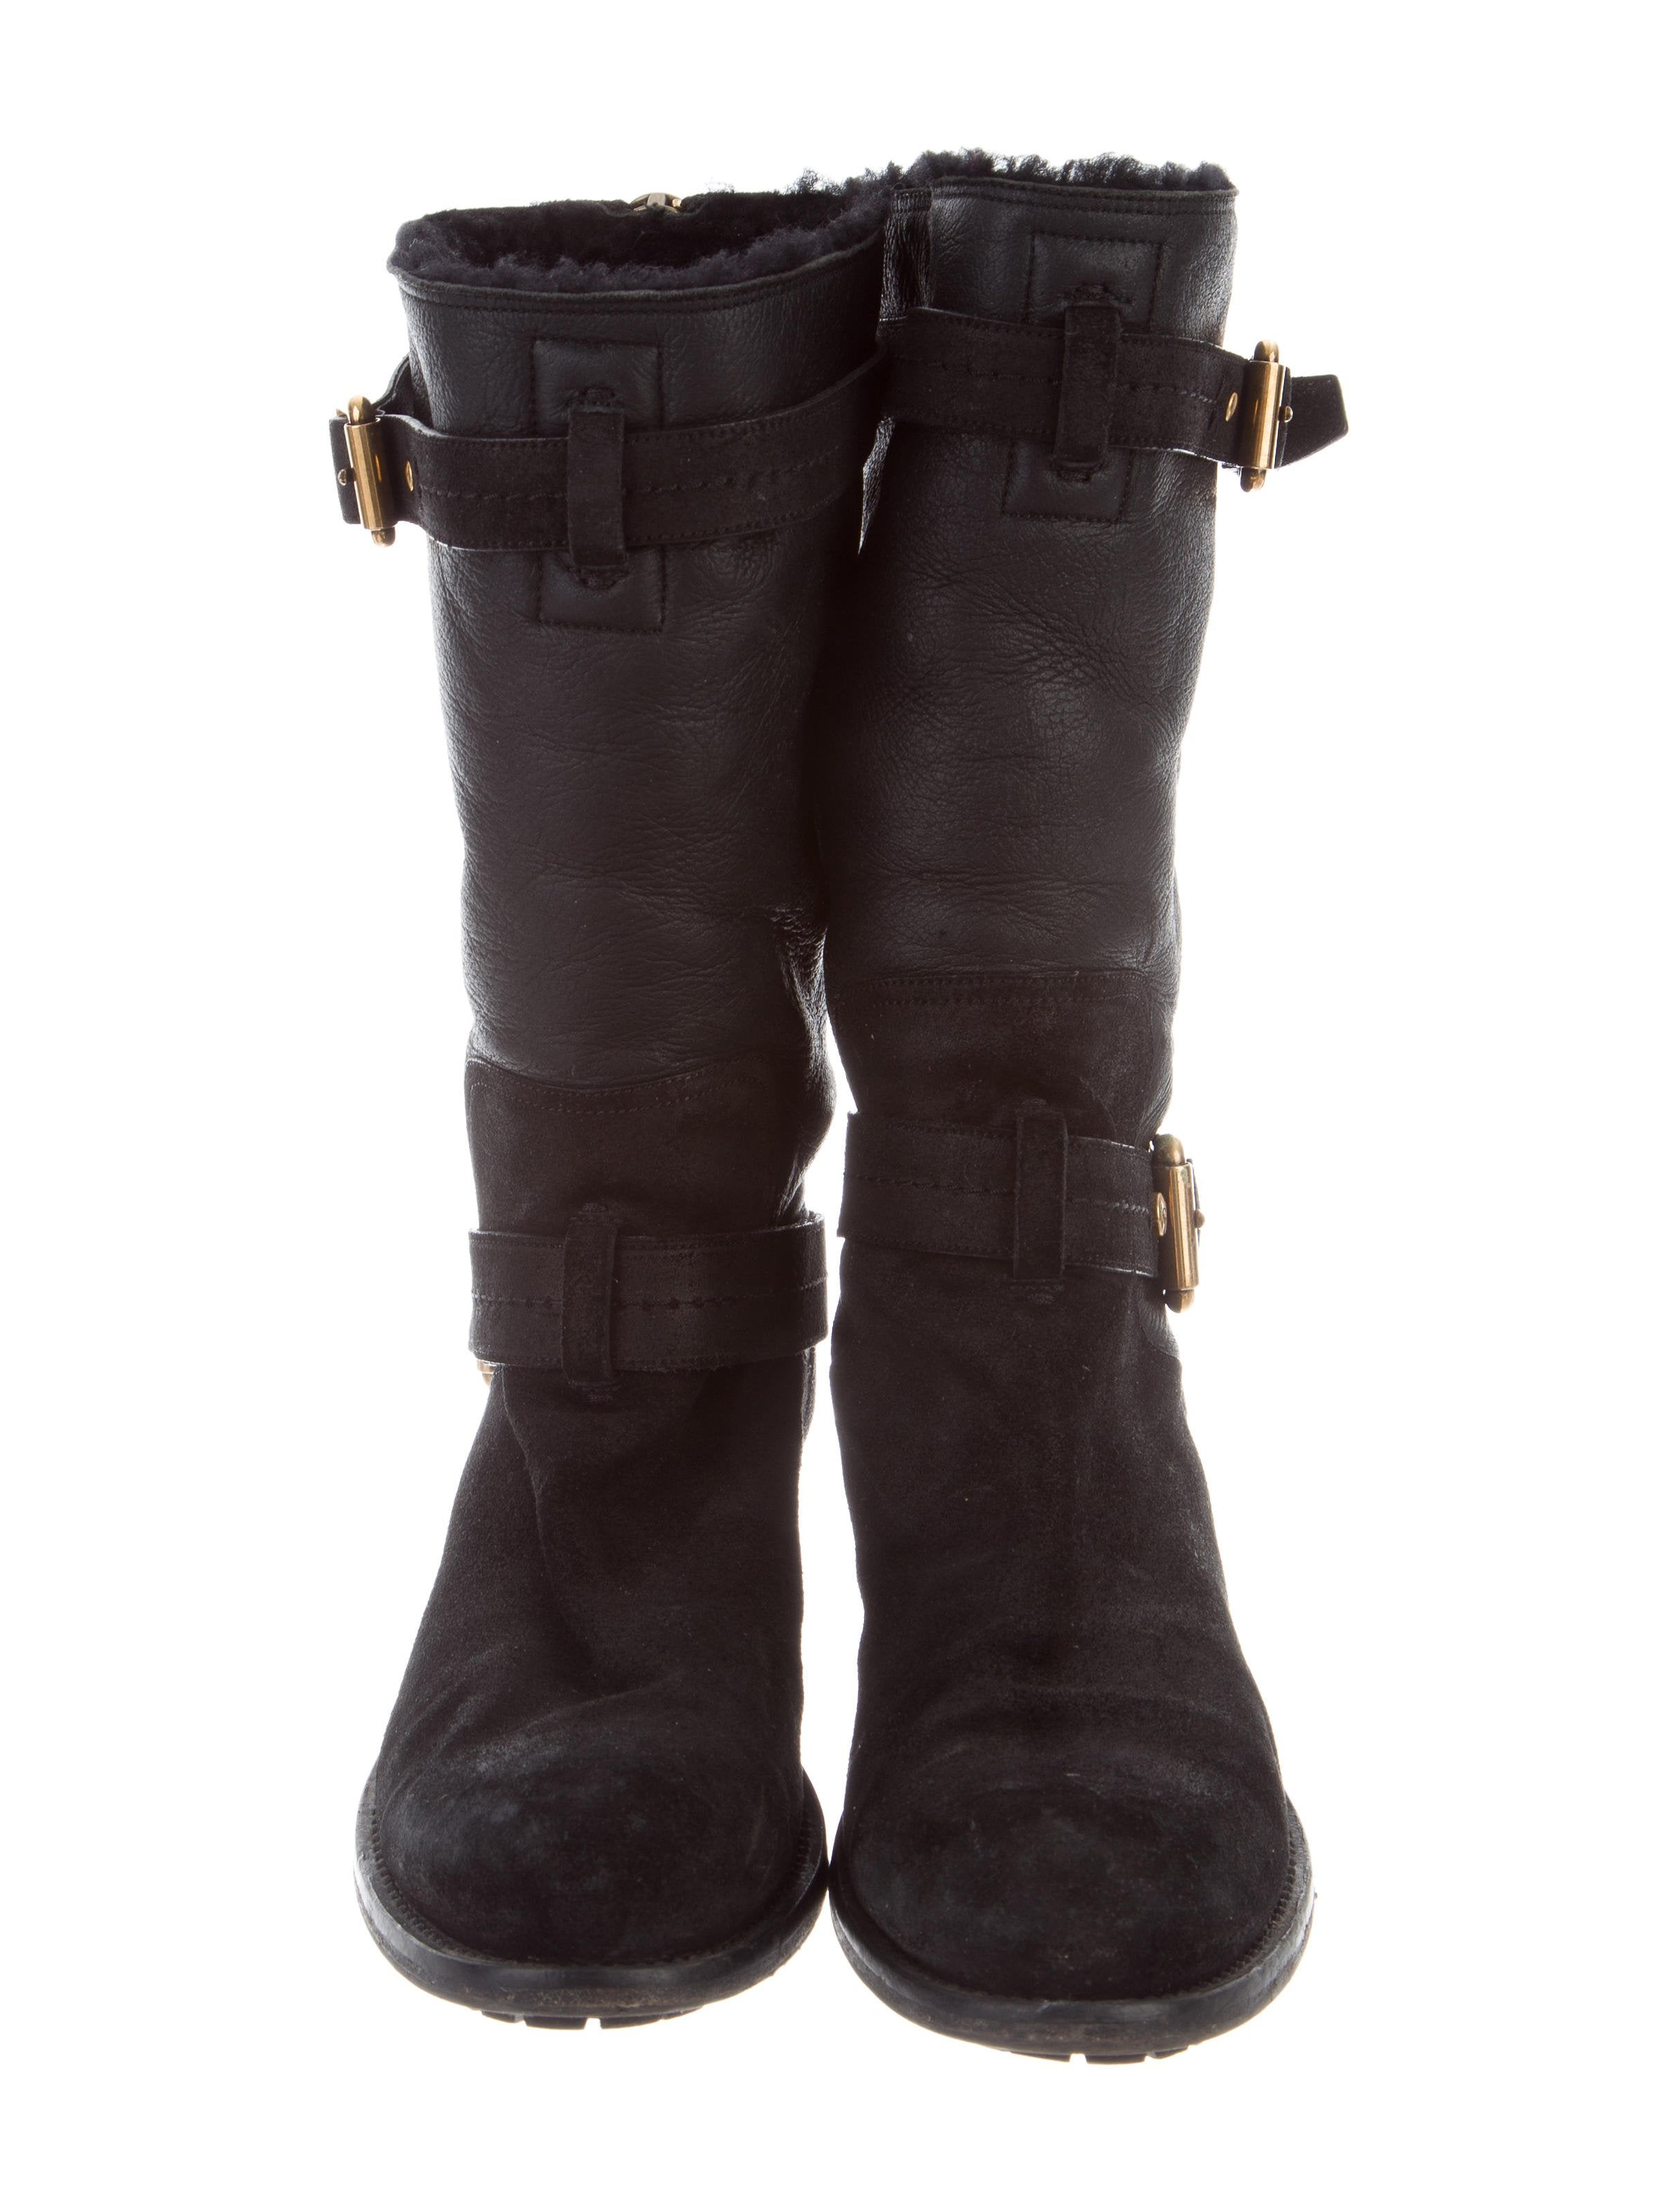 discount order Christian Dior Nubuck Mid-Calf Boots amazon sale online cheap sale classic collections cheap price store for sale SpHz9BmVbv